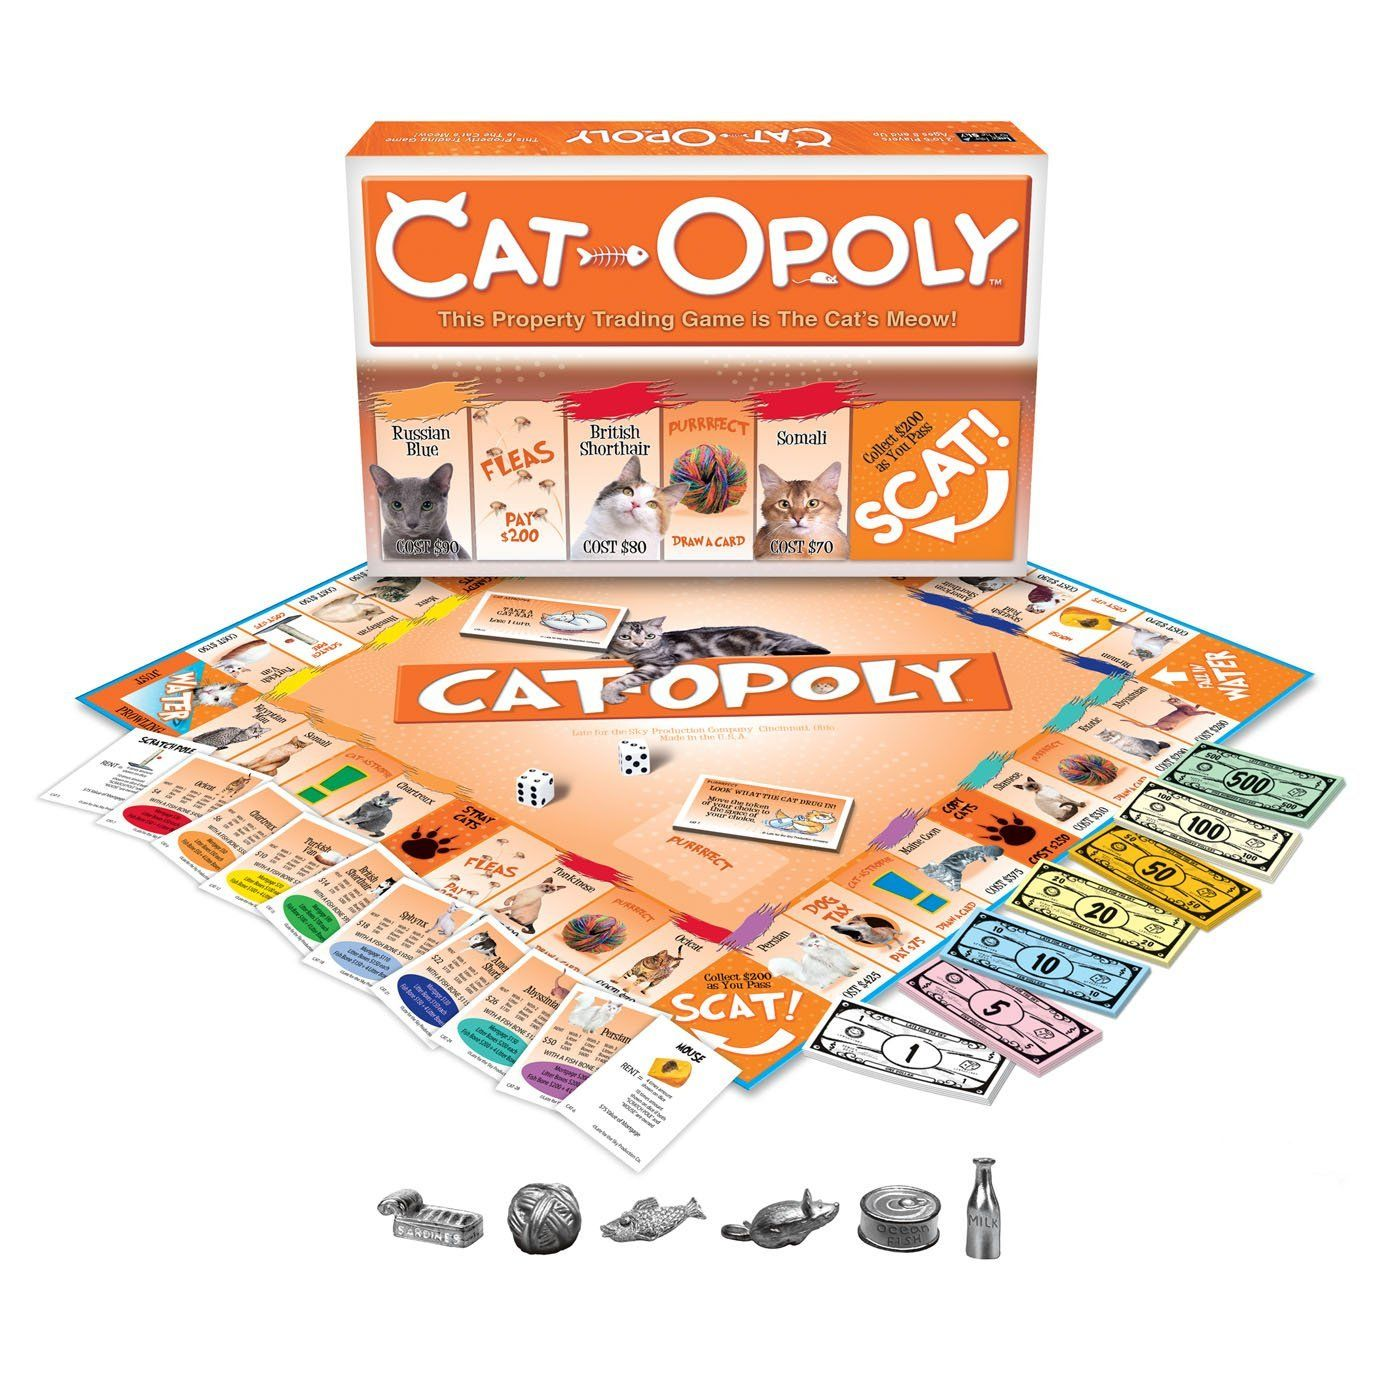 Catopoly board game - cat monopoly.  Image shows game board and metal tokens